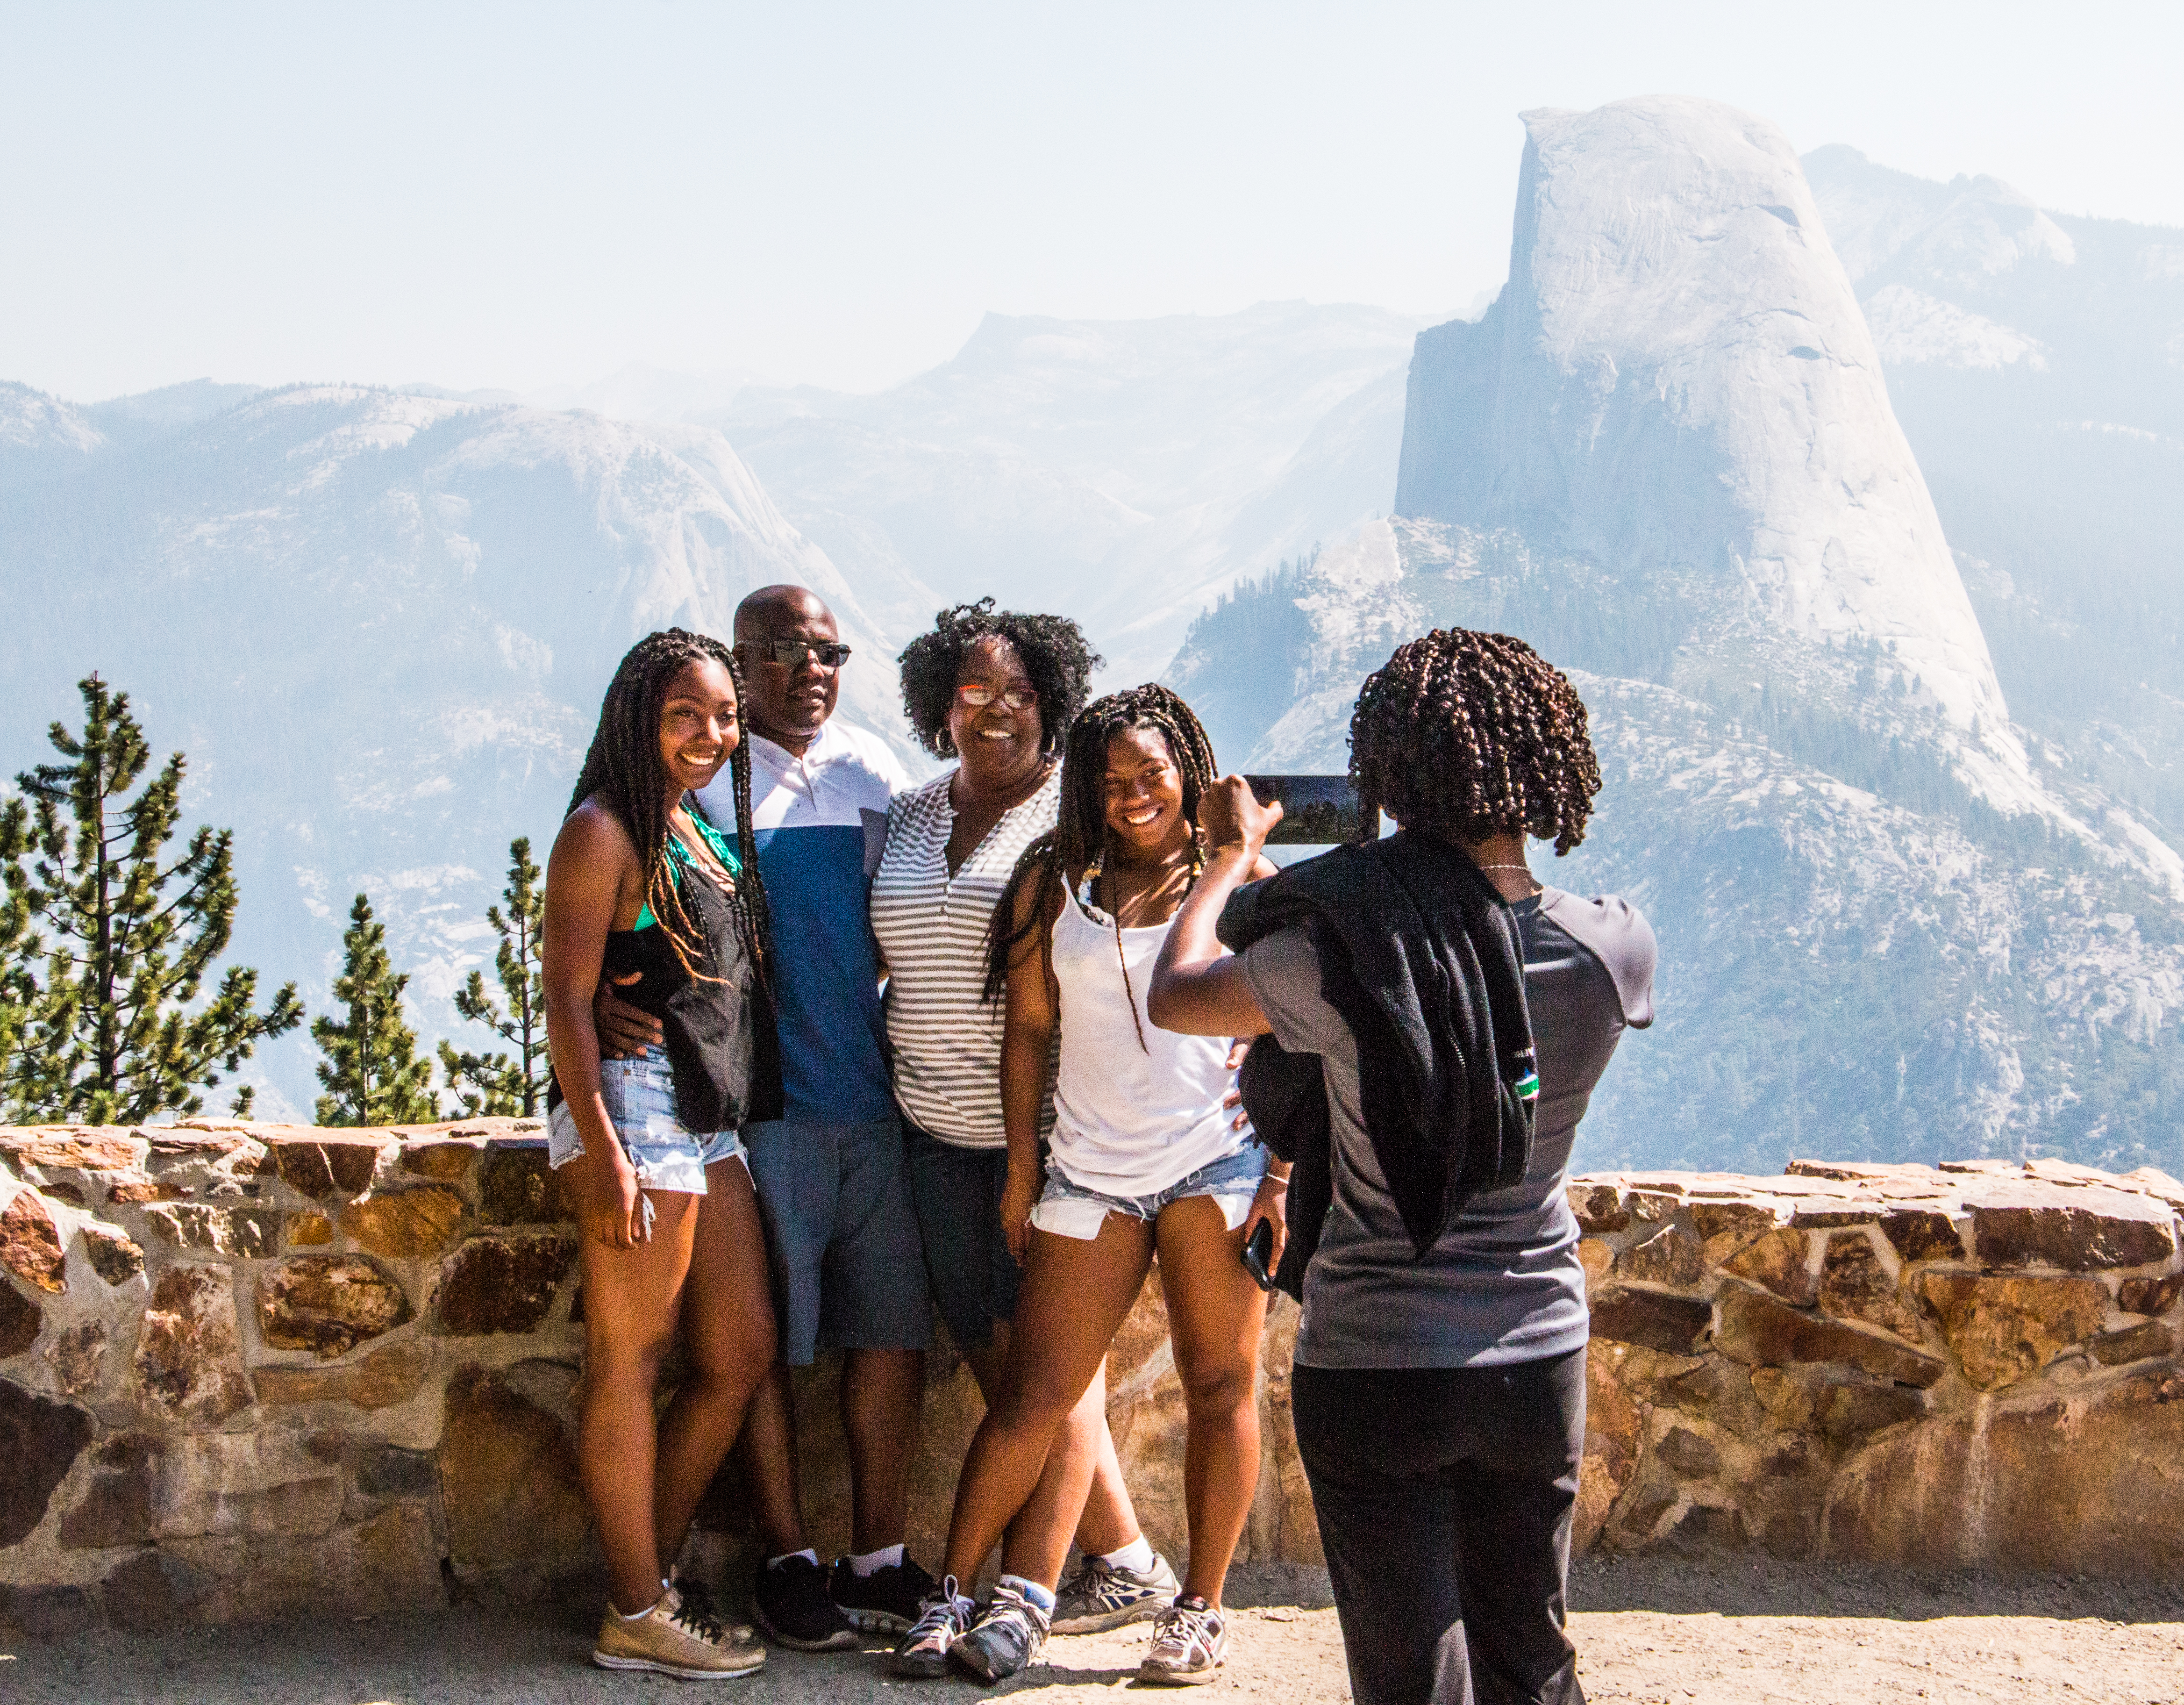 The King Family from Los Angeles visiting Yosemite for the first time take in the view of Half Dome from Glacier Point